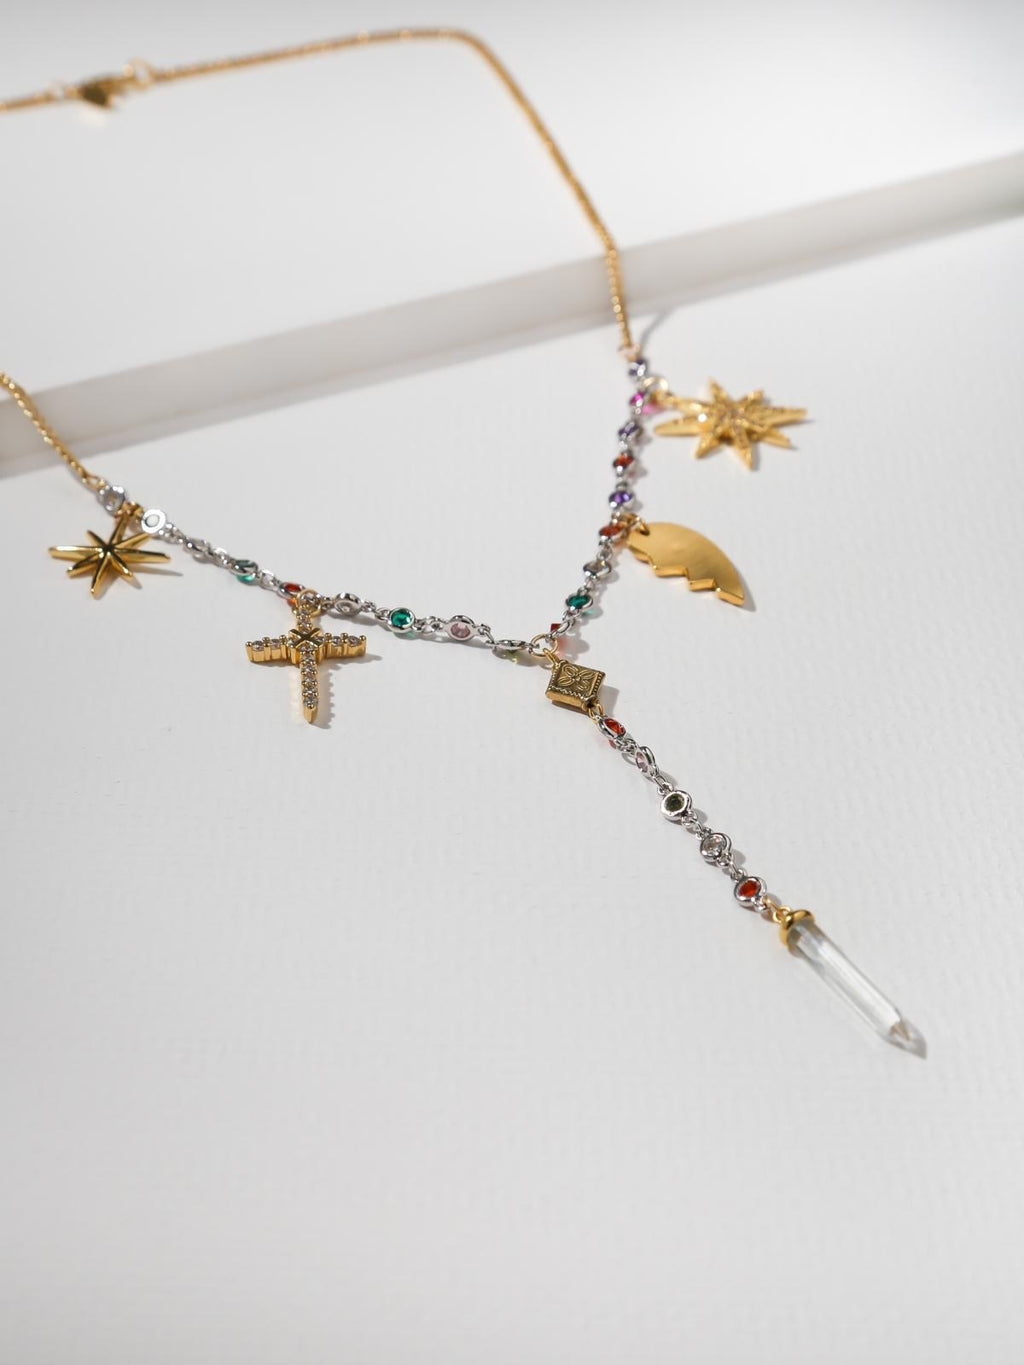 The Charmed Rosary